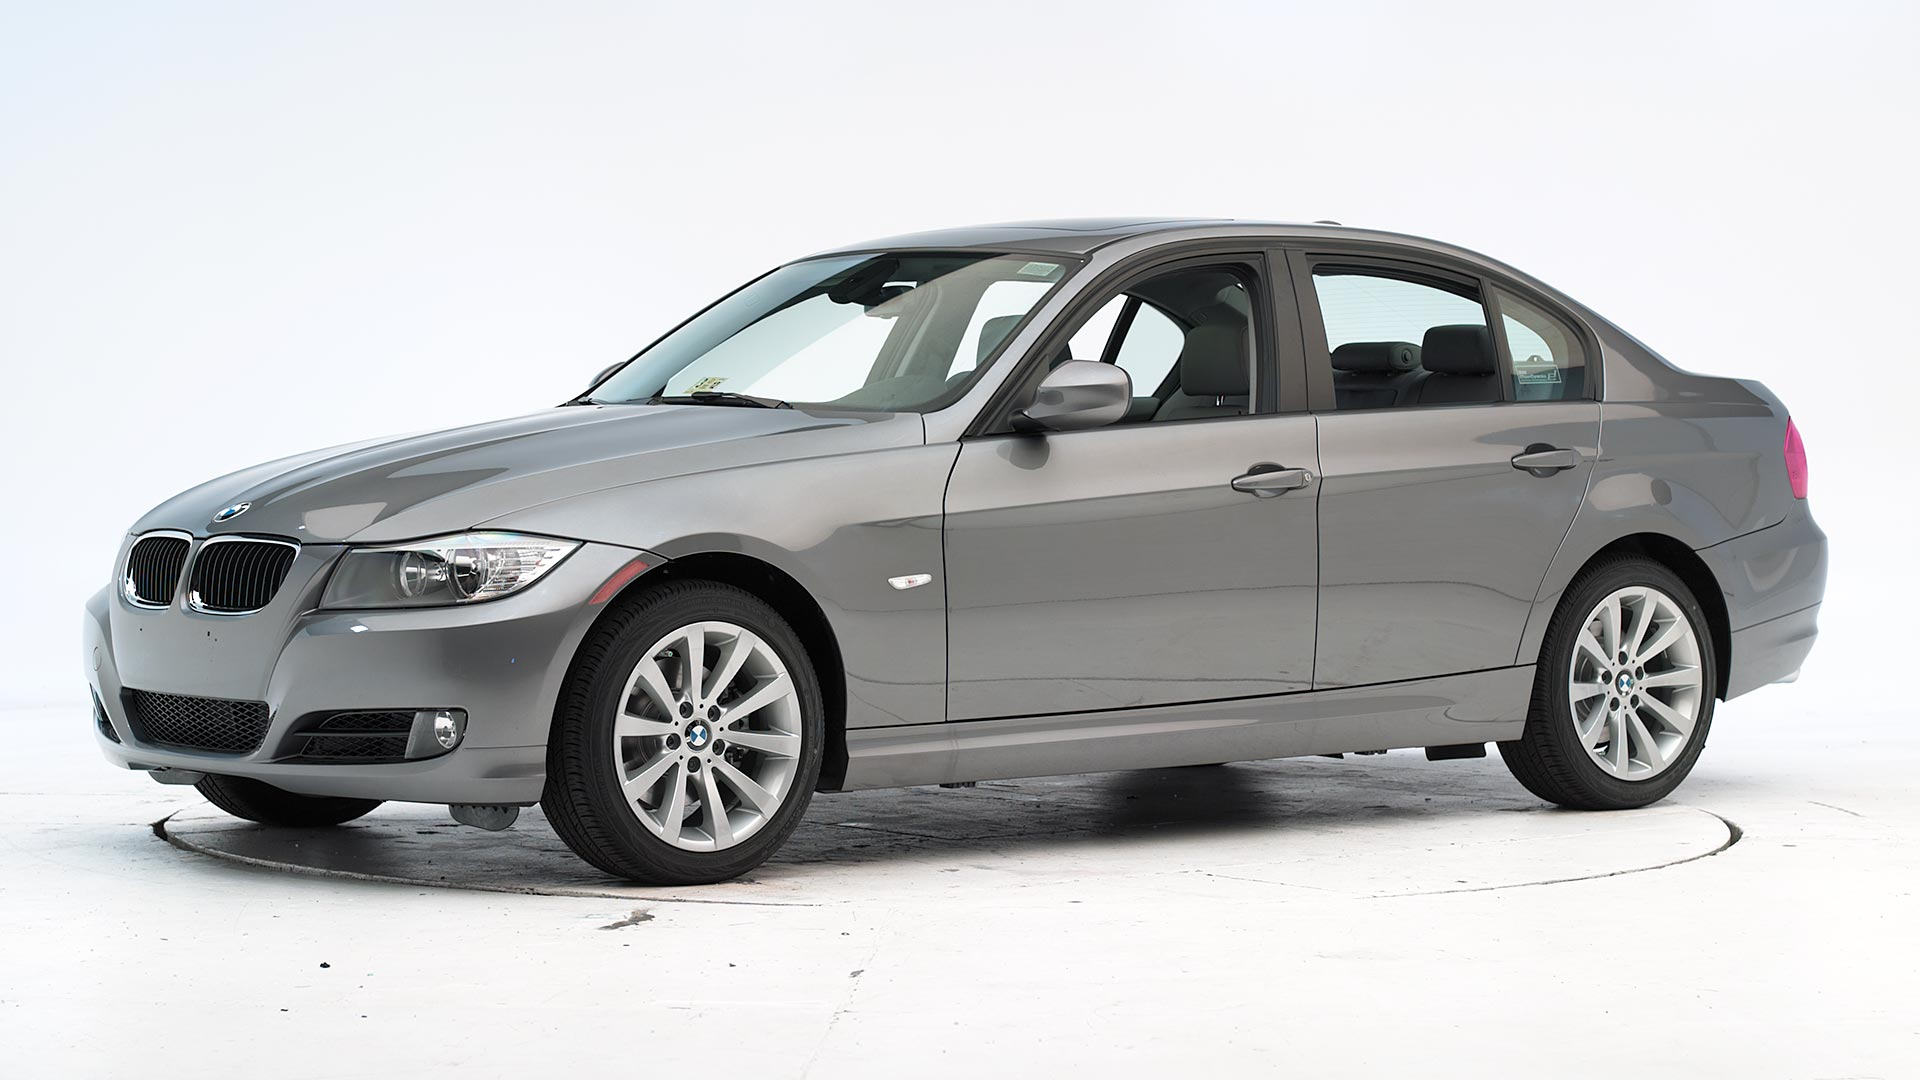 2011 BMW 3 series 4-door sedan